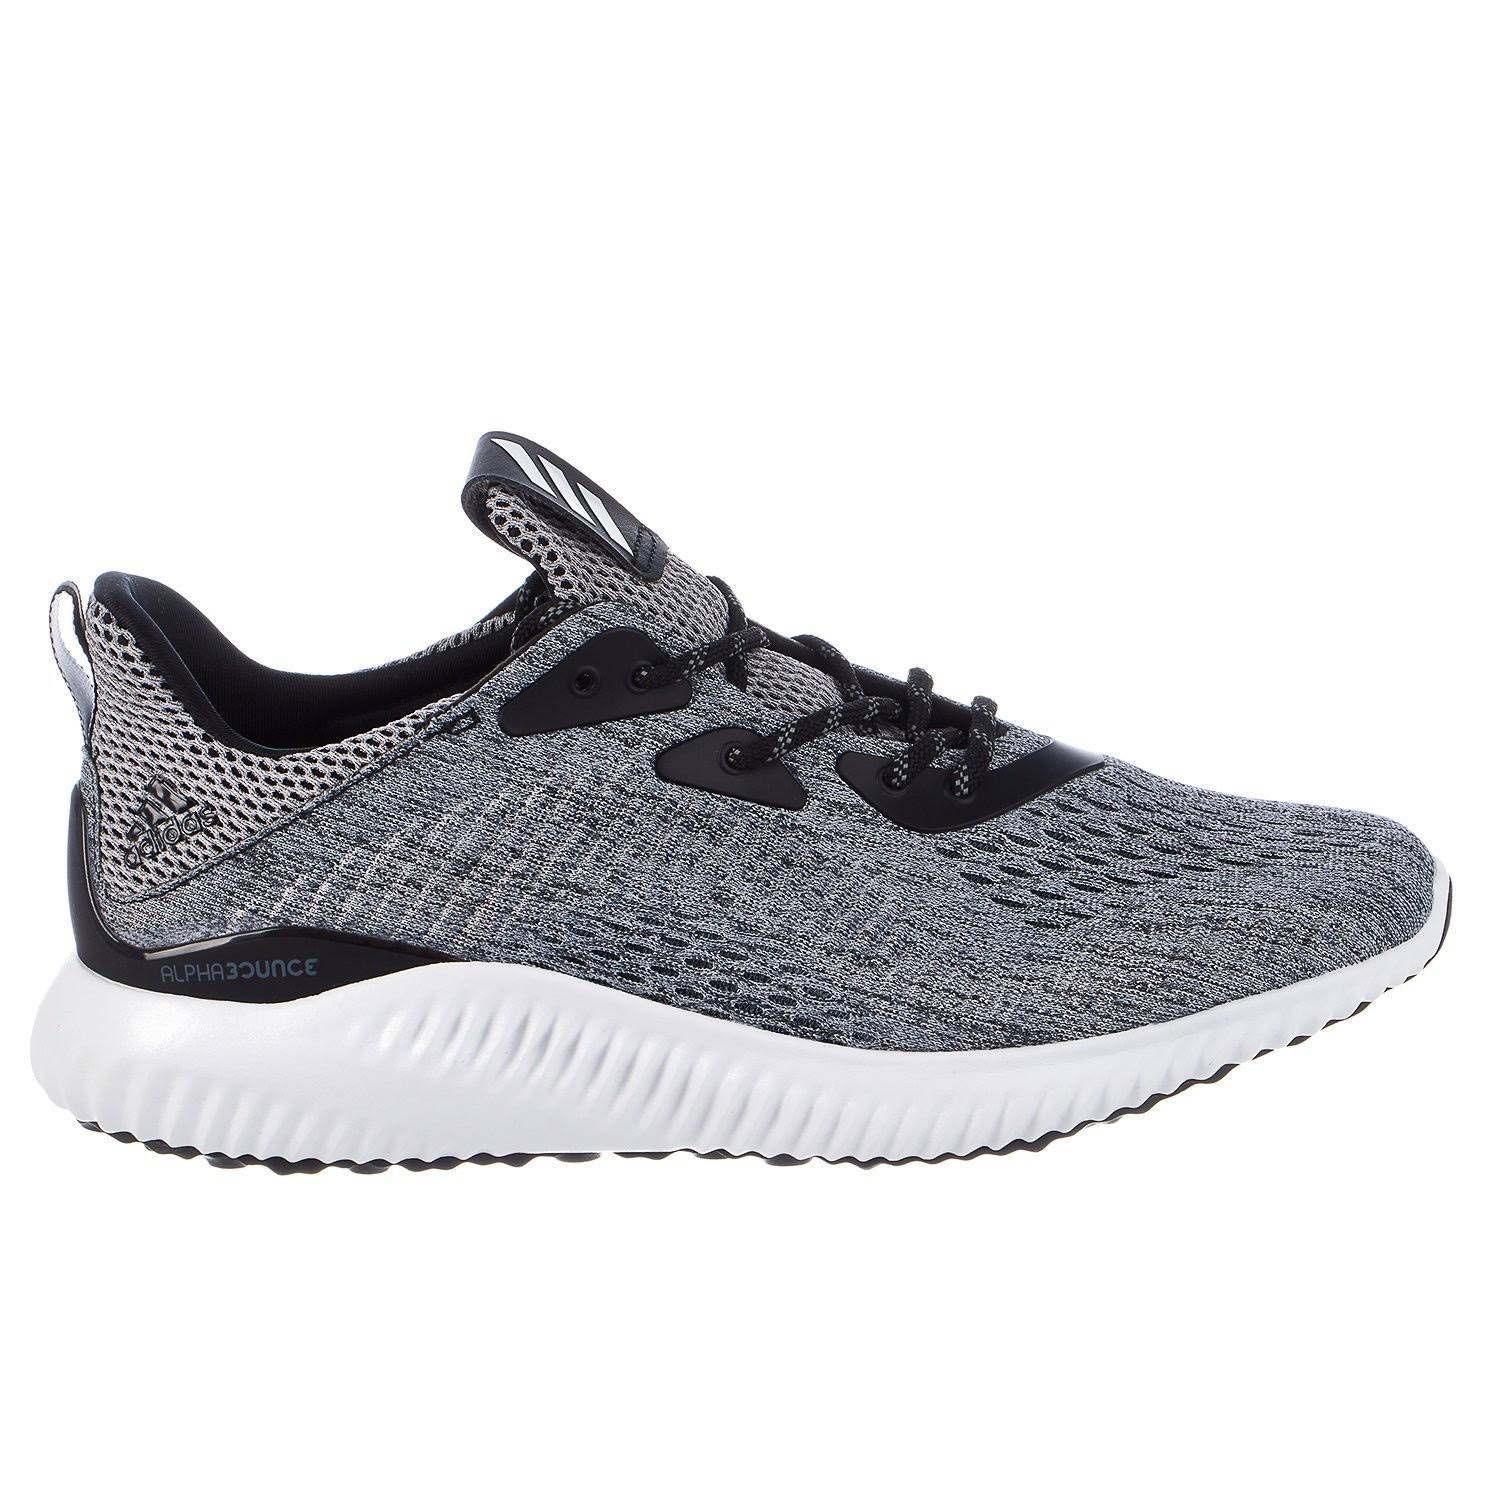 Bb9043 Adidas Em Black Core Alphabounce Men's Calzado Blanco pqqgnRt